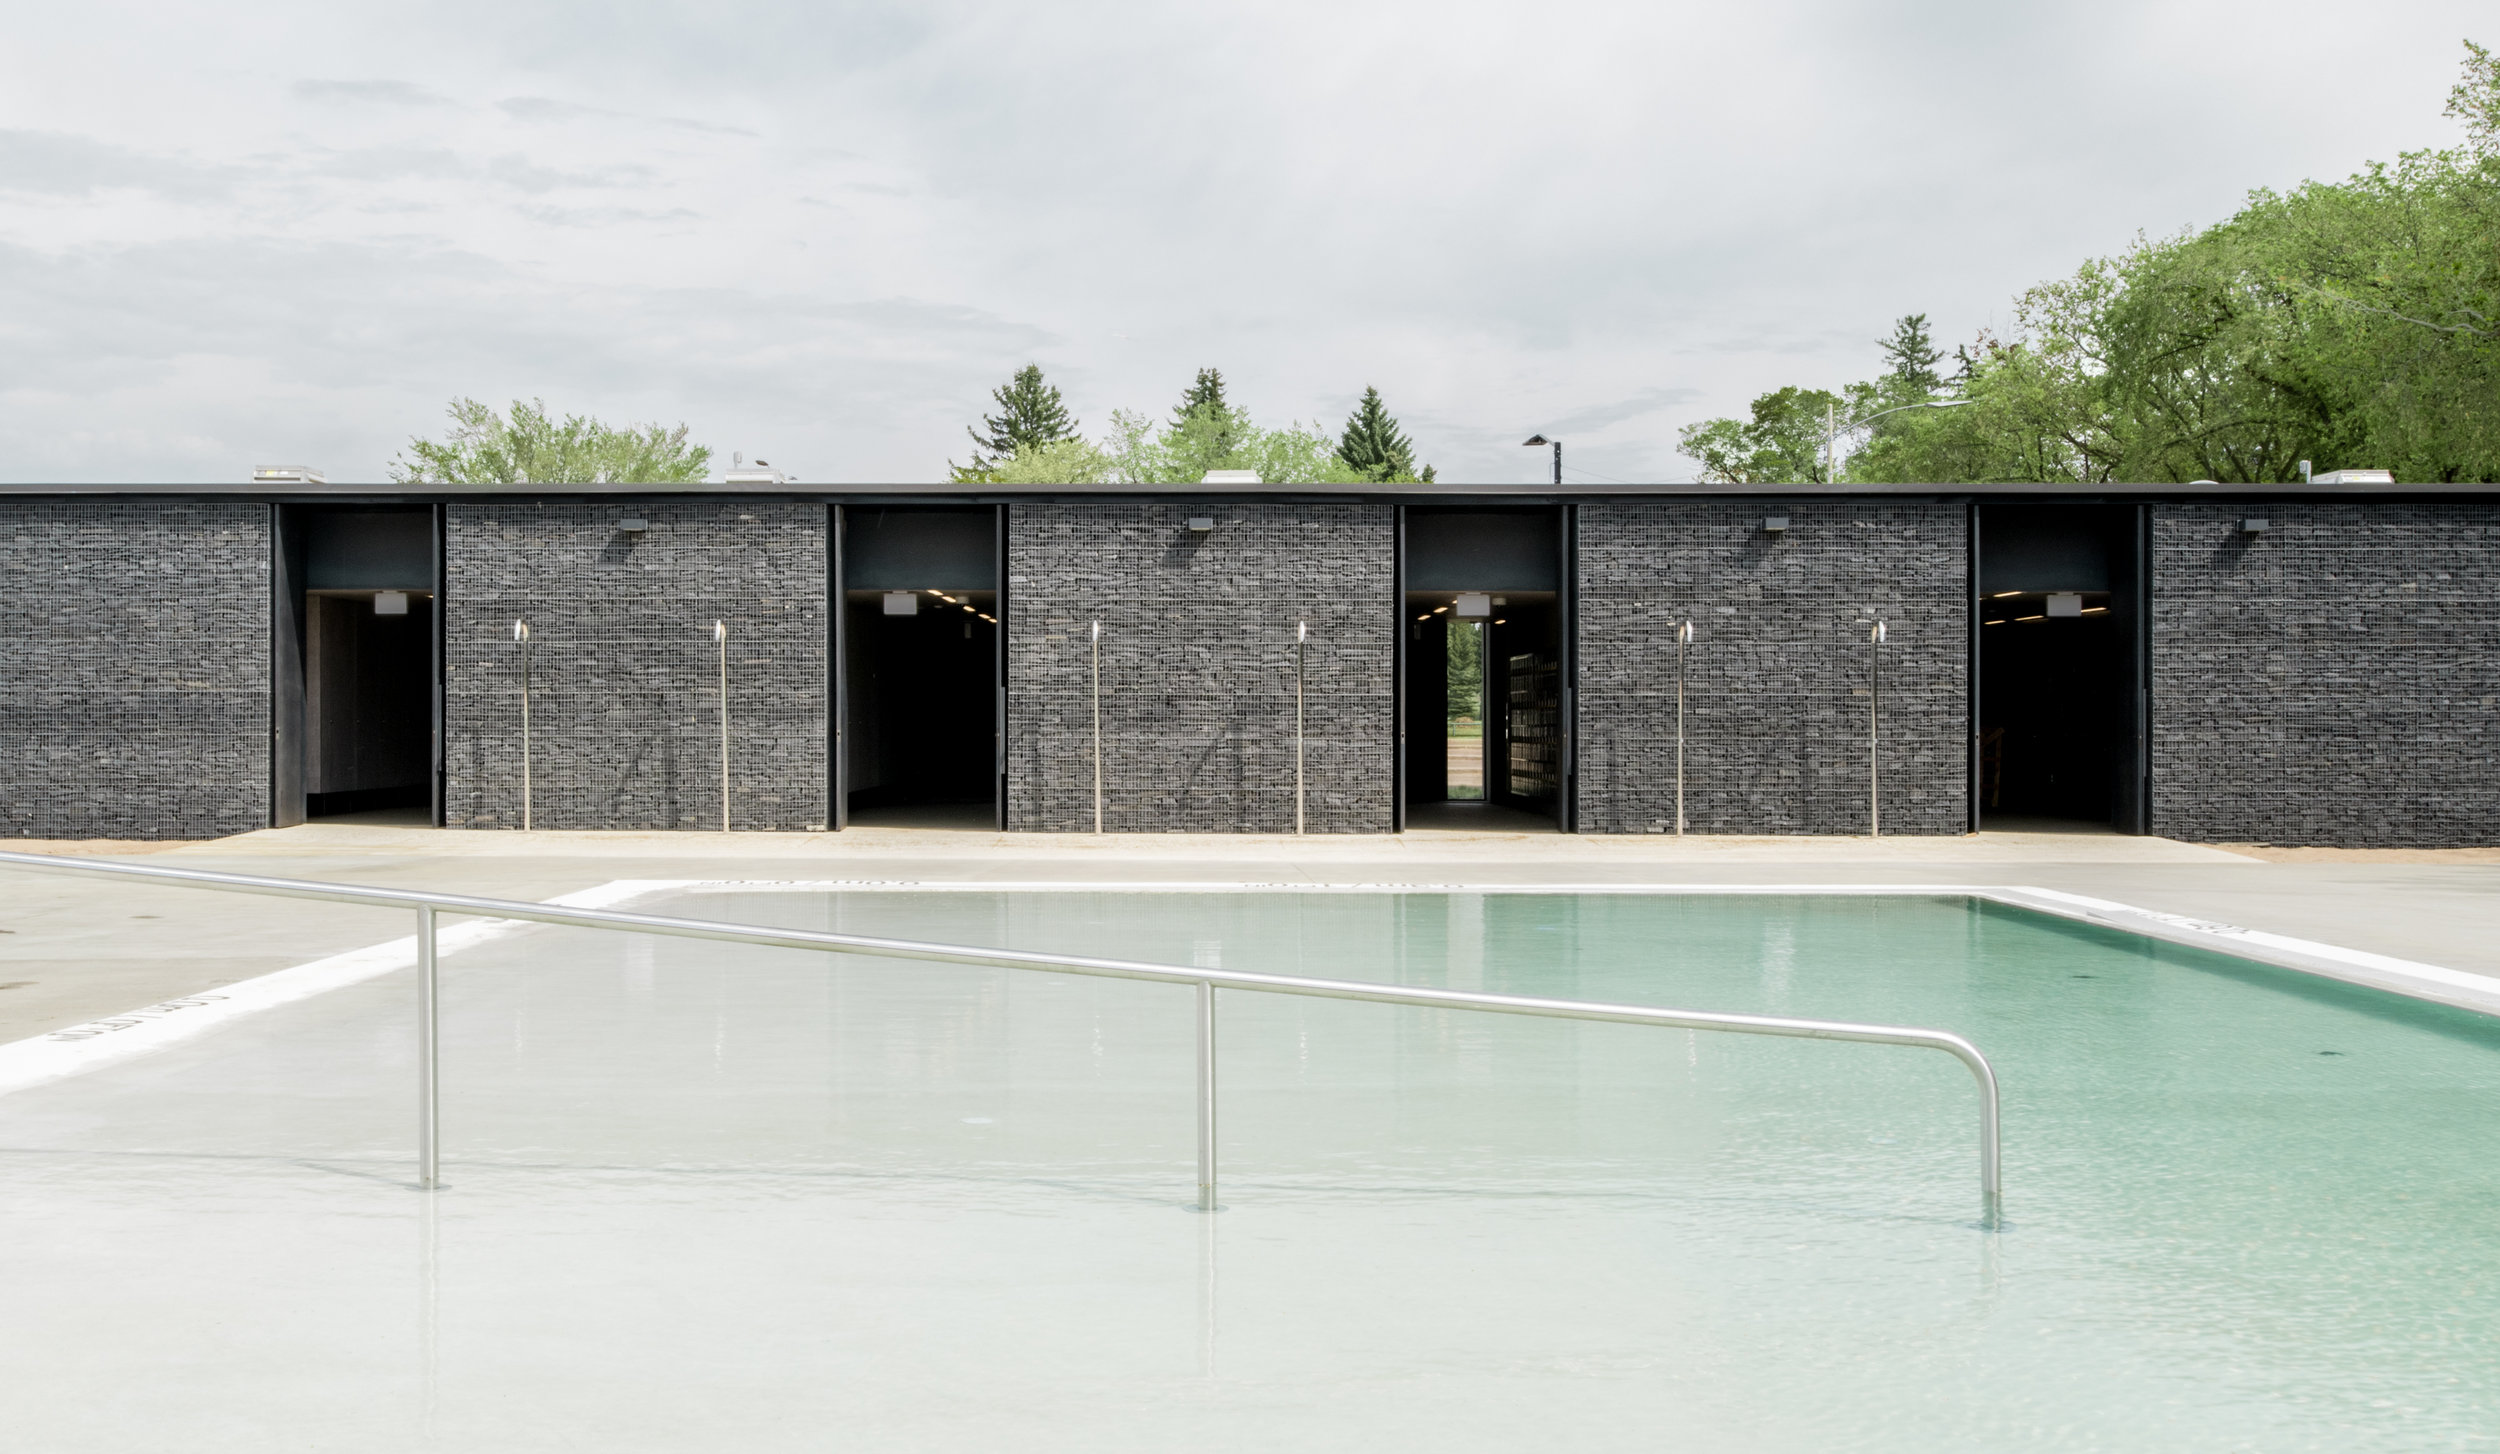 gh3 - Borden Park Natural Swimming Pool - Building Elevation wit